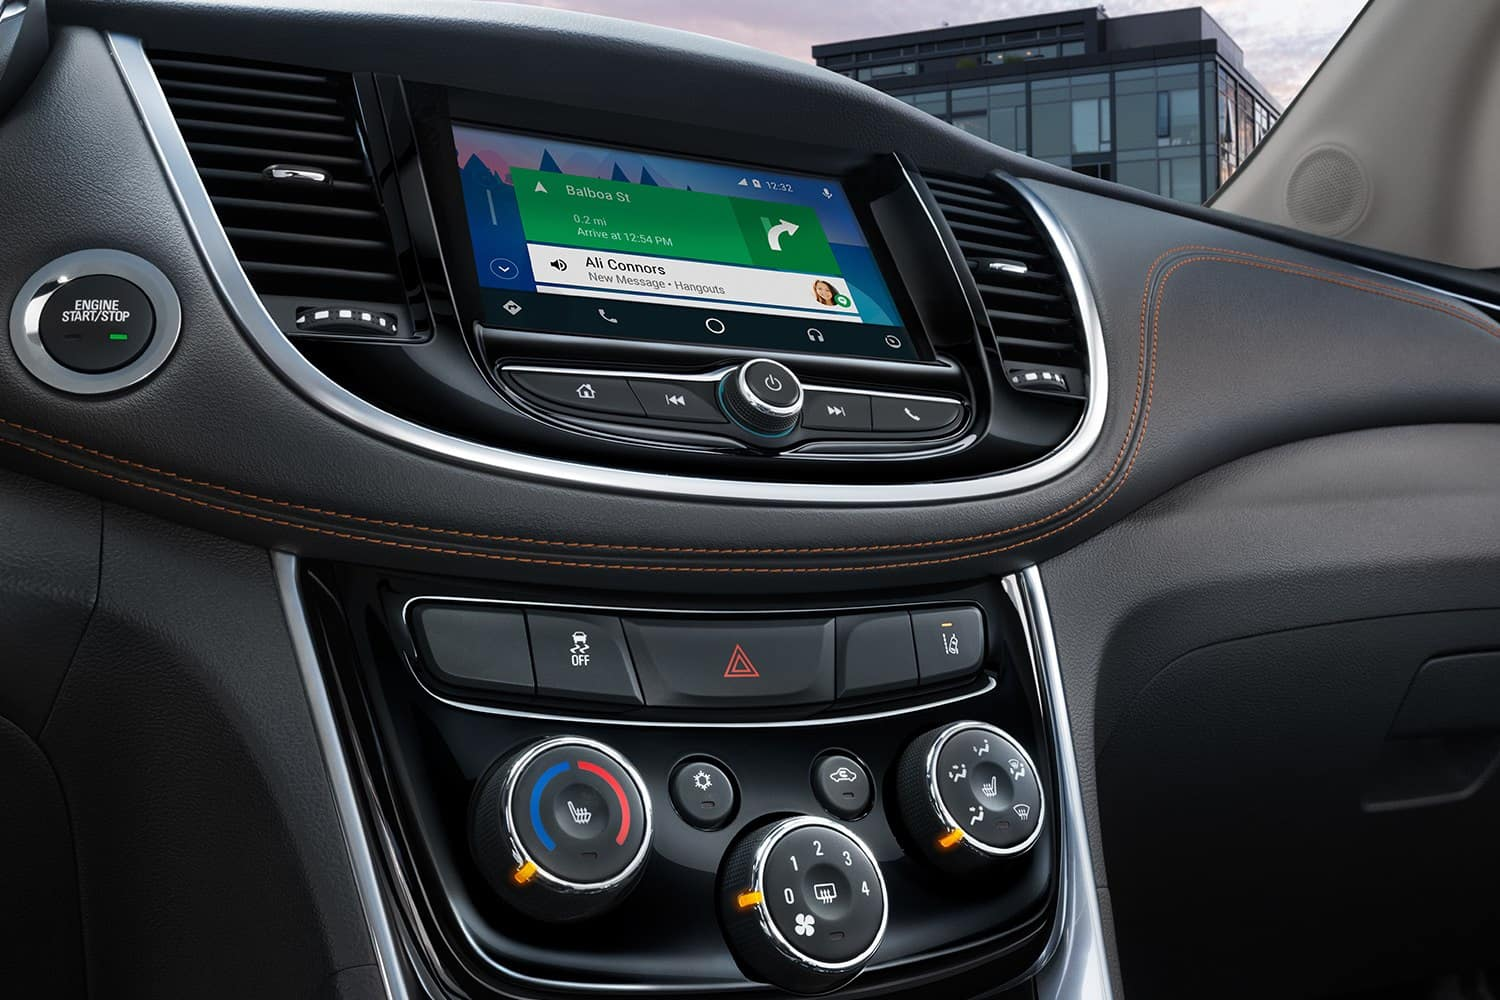 2018 Chevy Trax Interior Ron Westphal